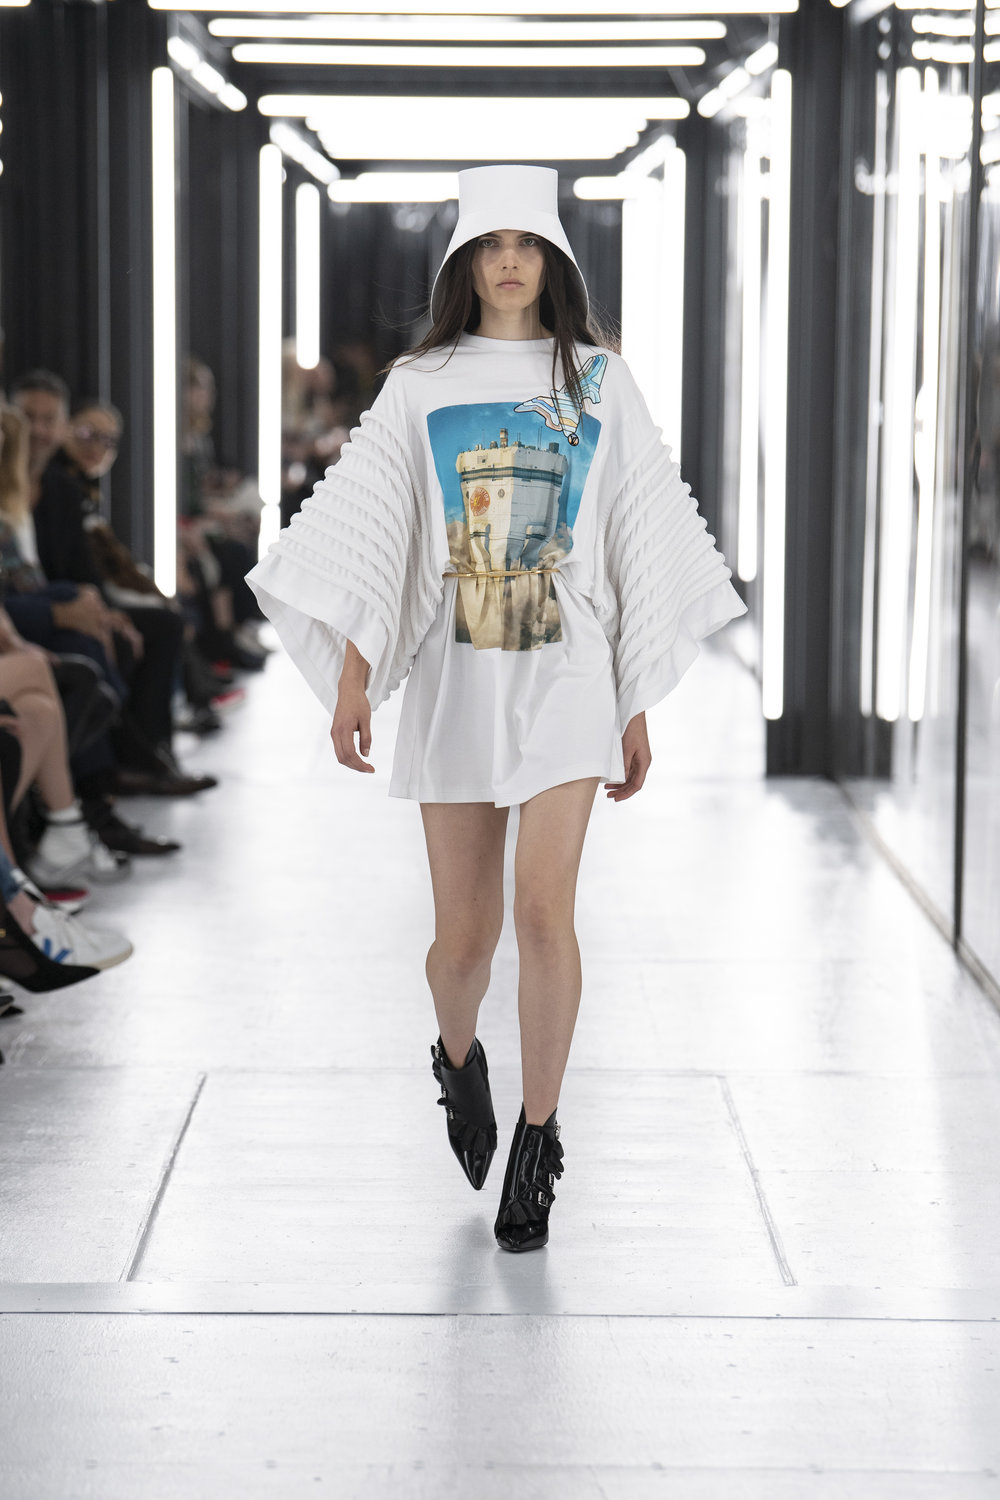 Louis_Vuitton_SS19_Look_09.jpg